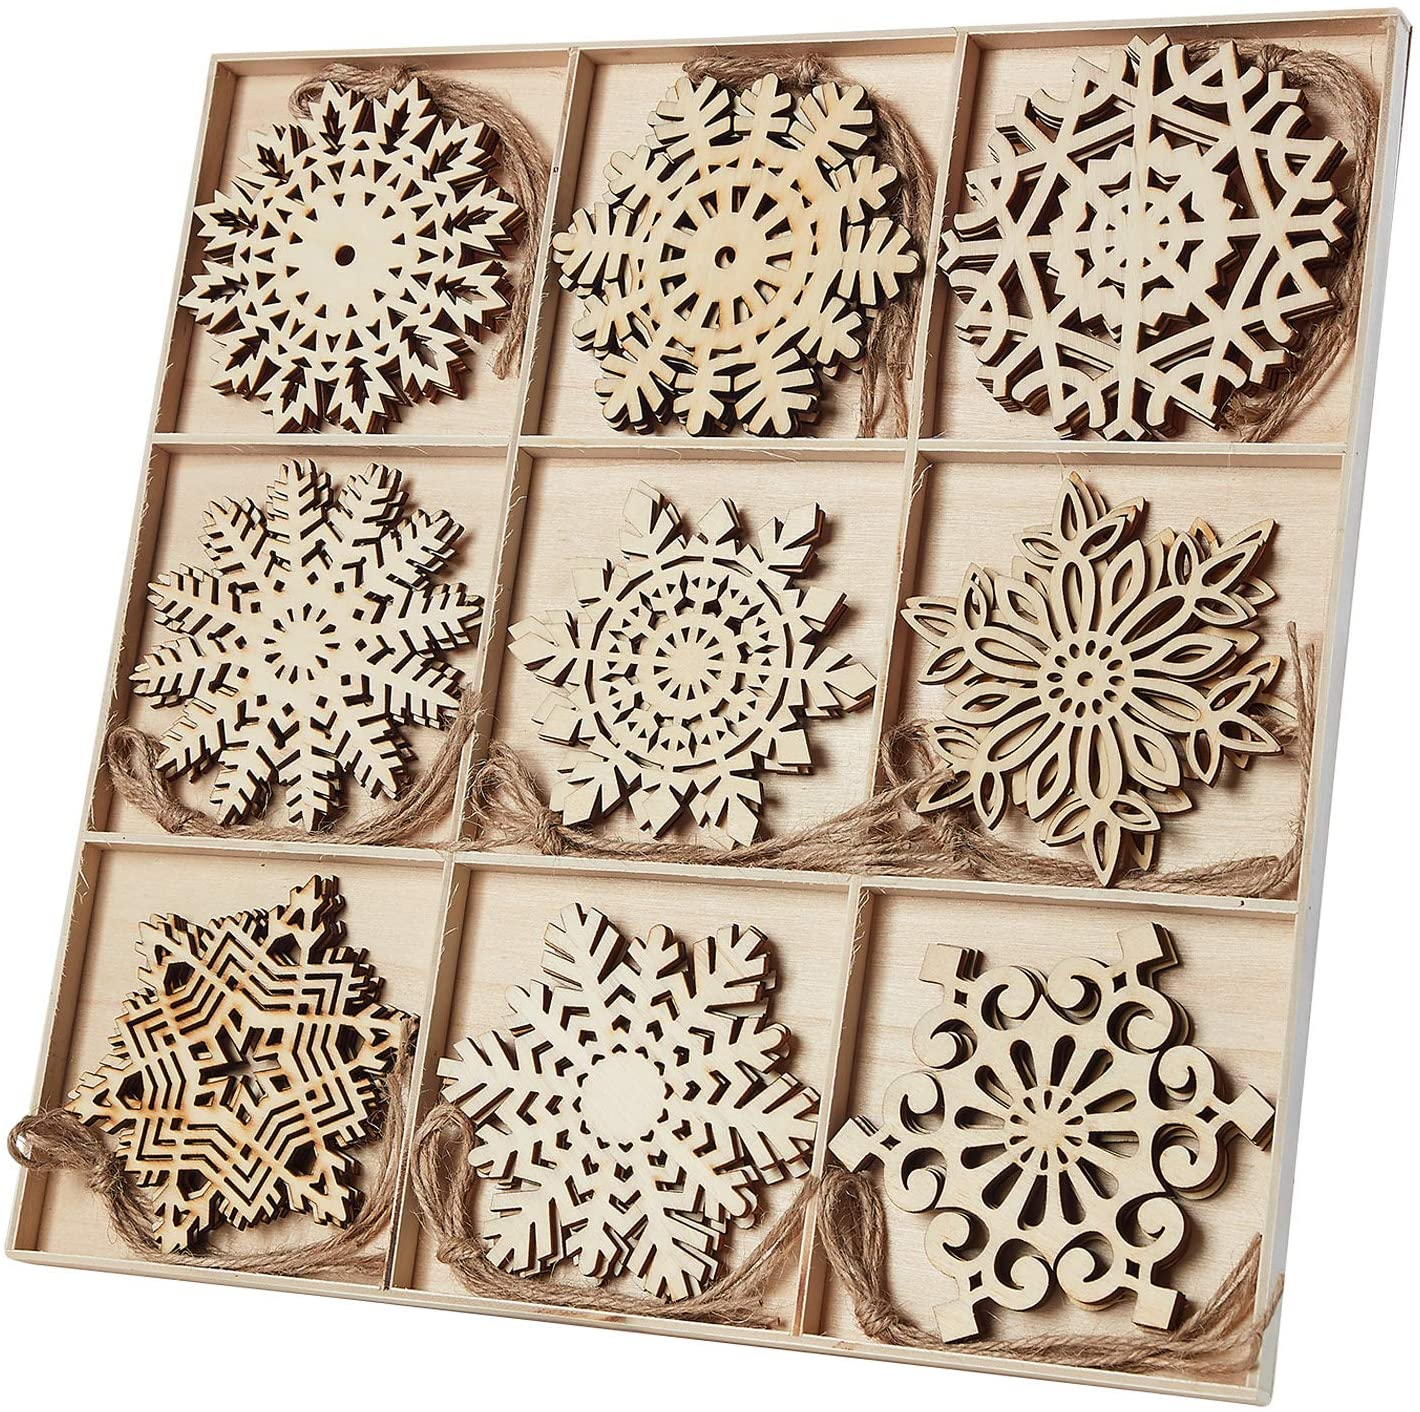 Free Amazon Promo Code 2020 for 7pcs Wooden Snowflakes Shaped